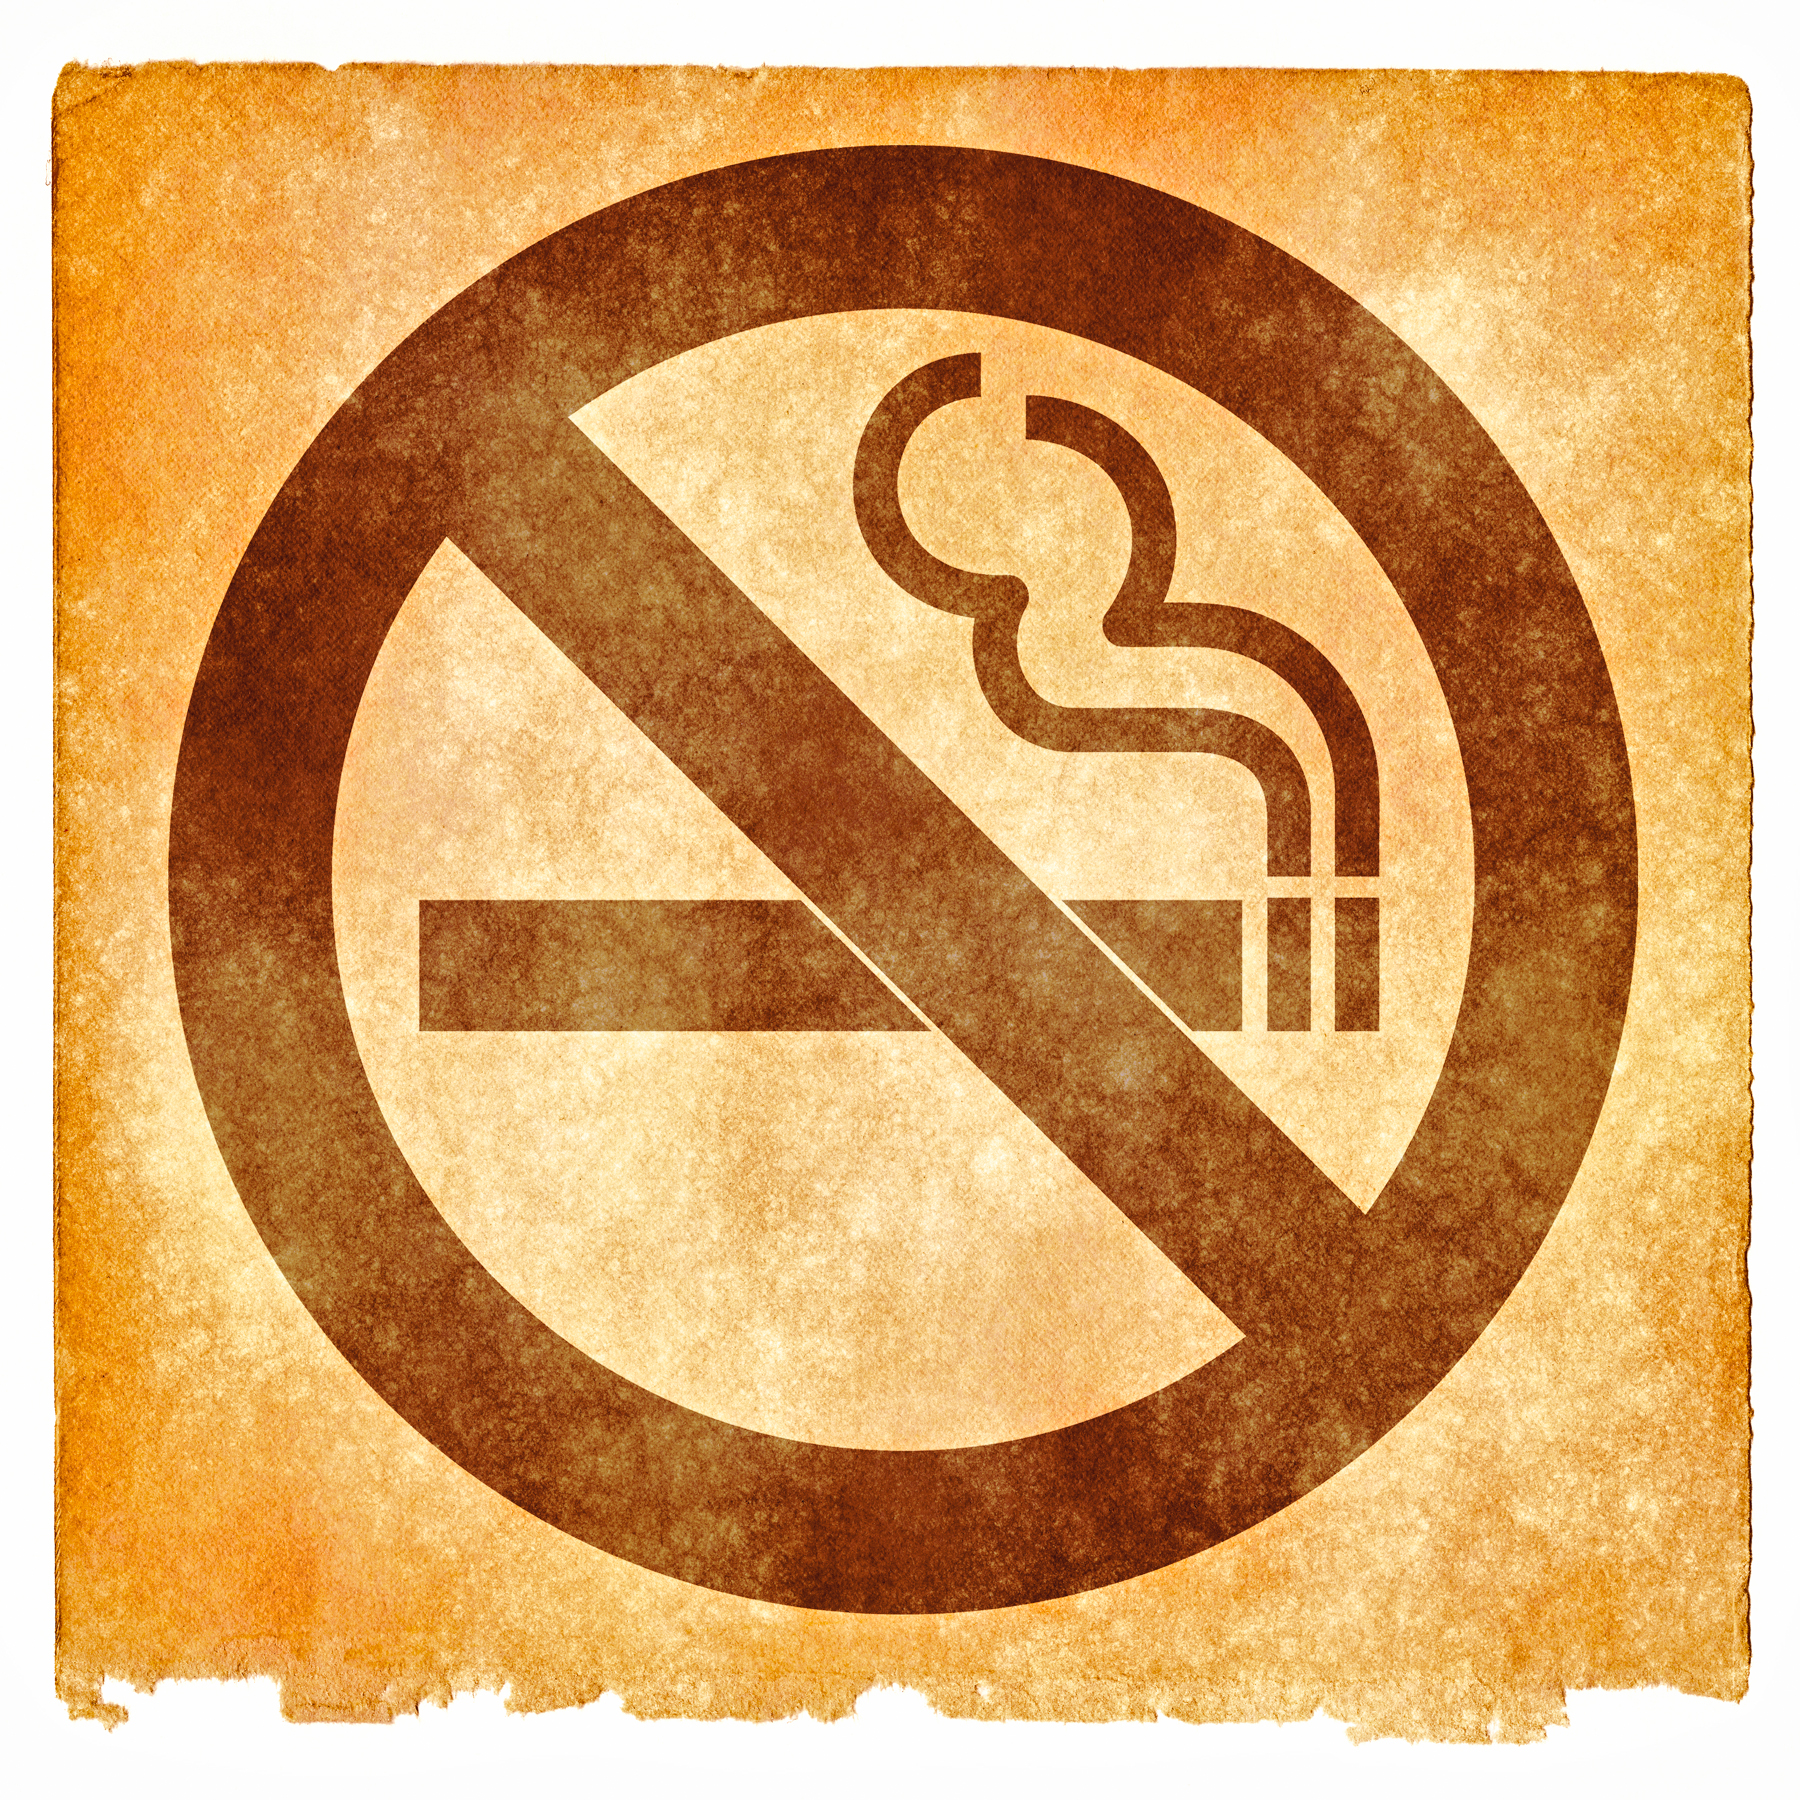 No smoking grunge sign photo